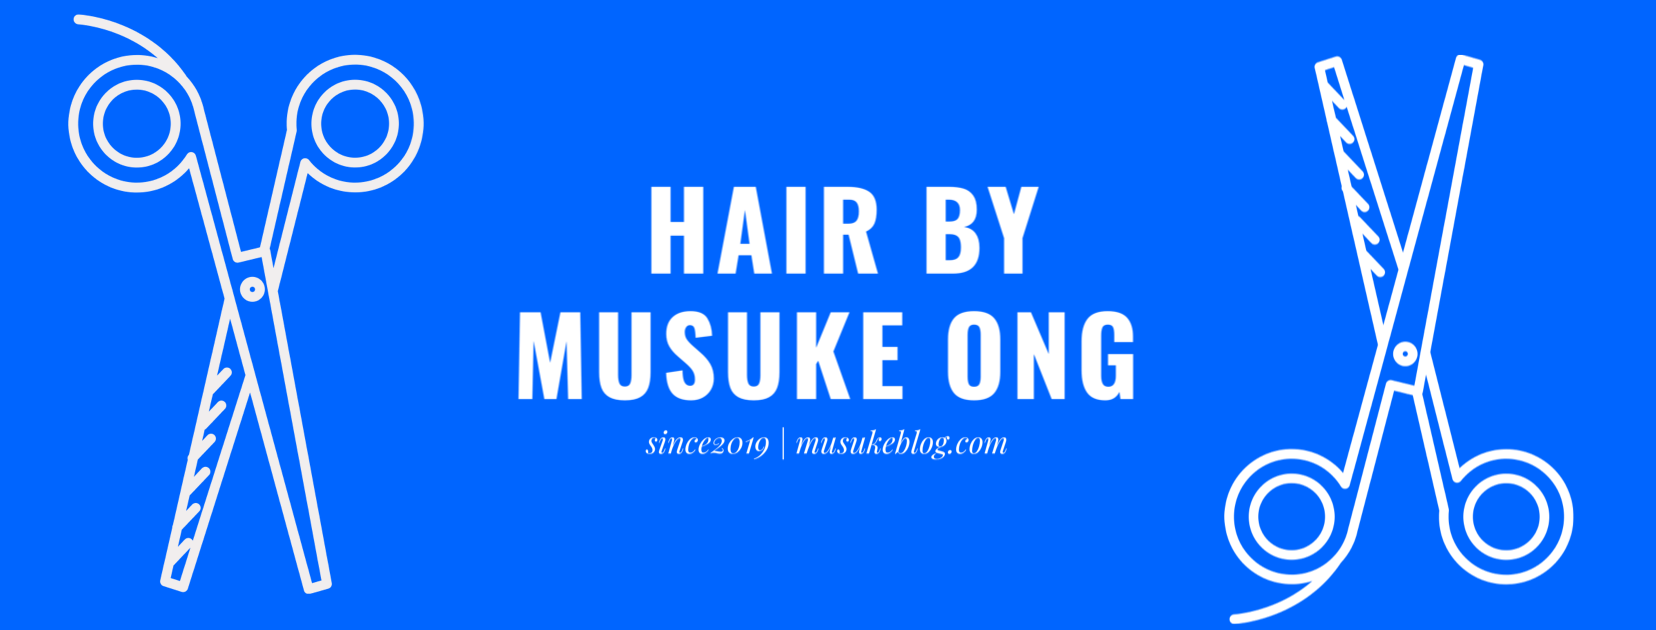 HAIR BY MUSUKE ONG